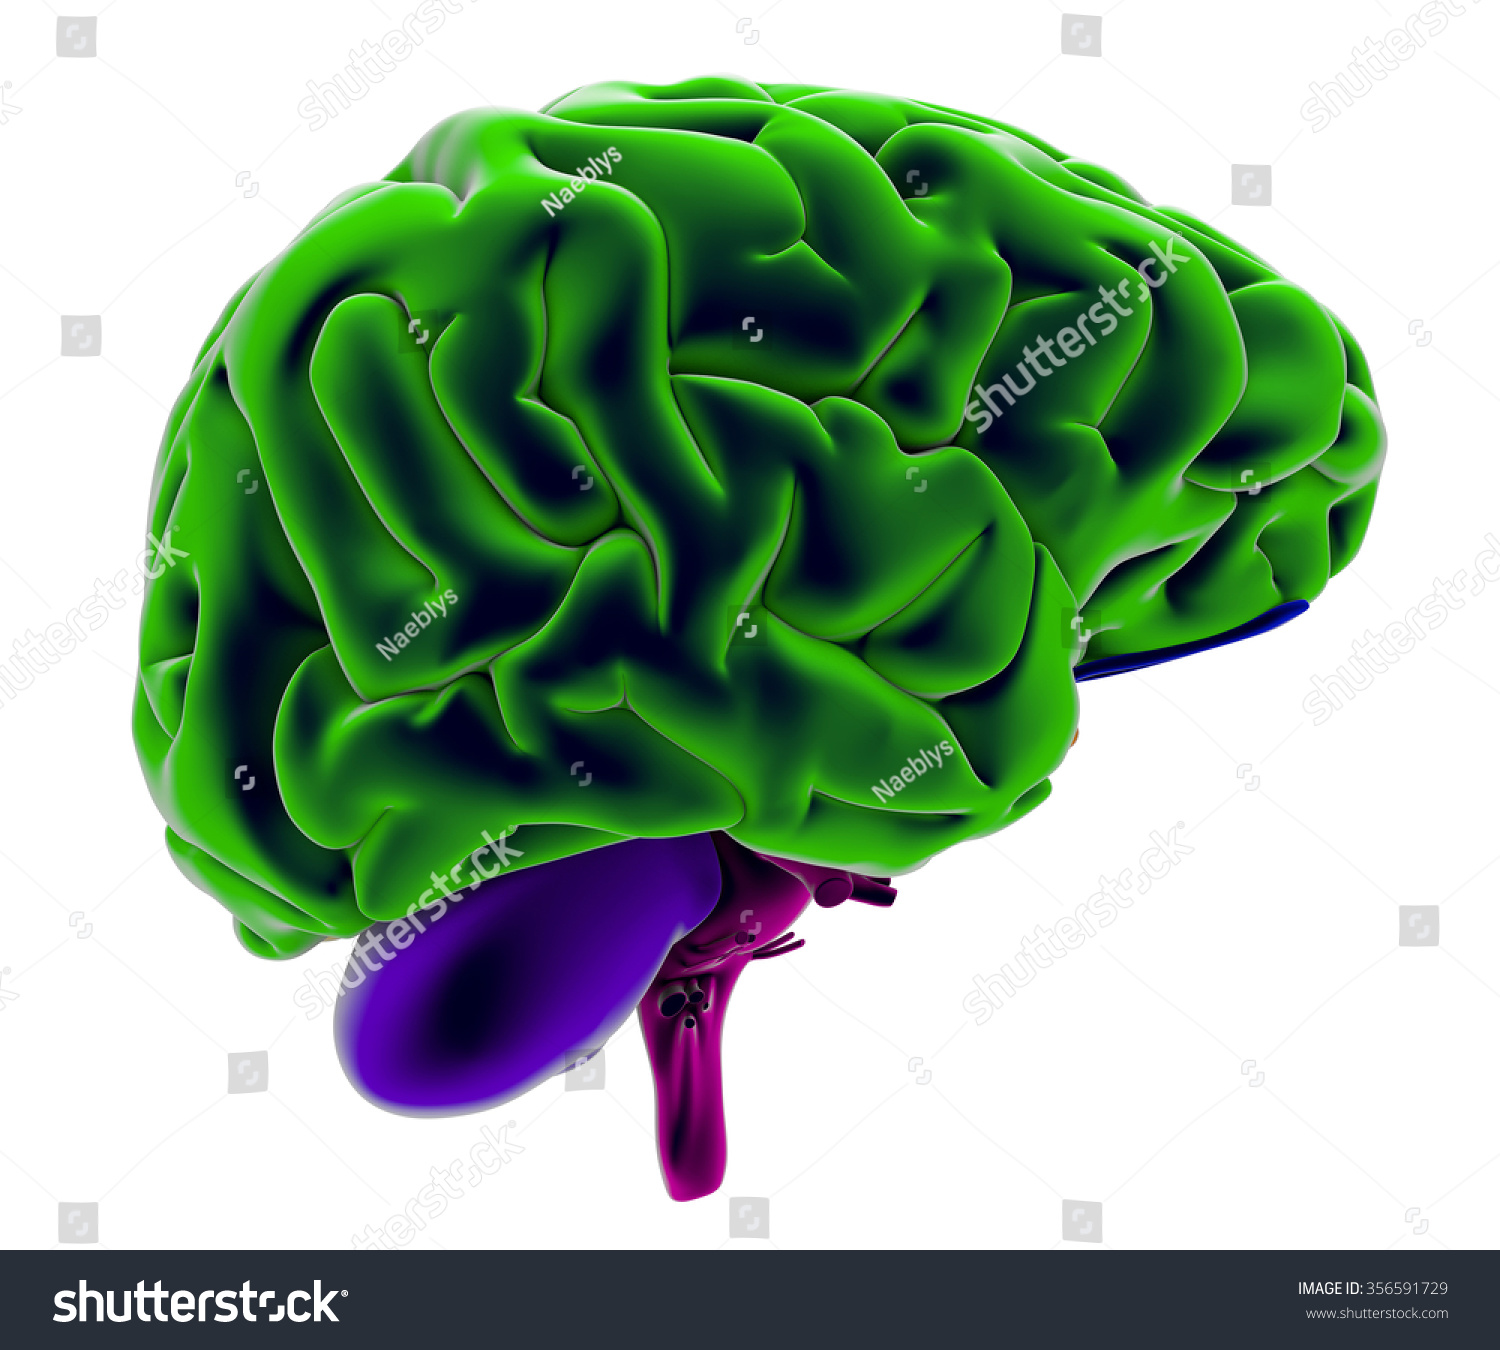 Brain, section, division, cutting parts, anatomy study. Brain seen ...